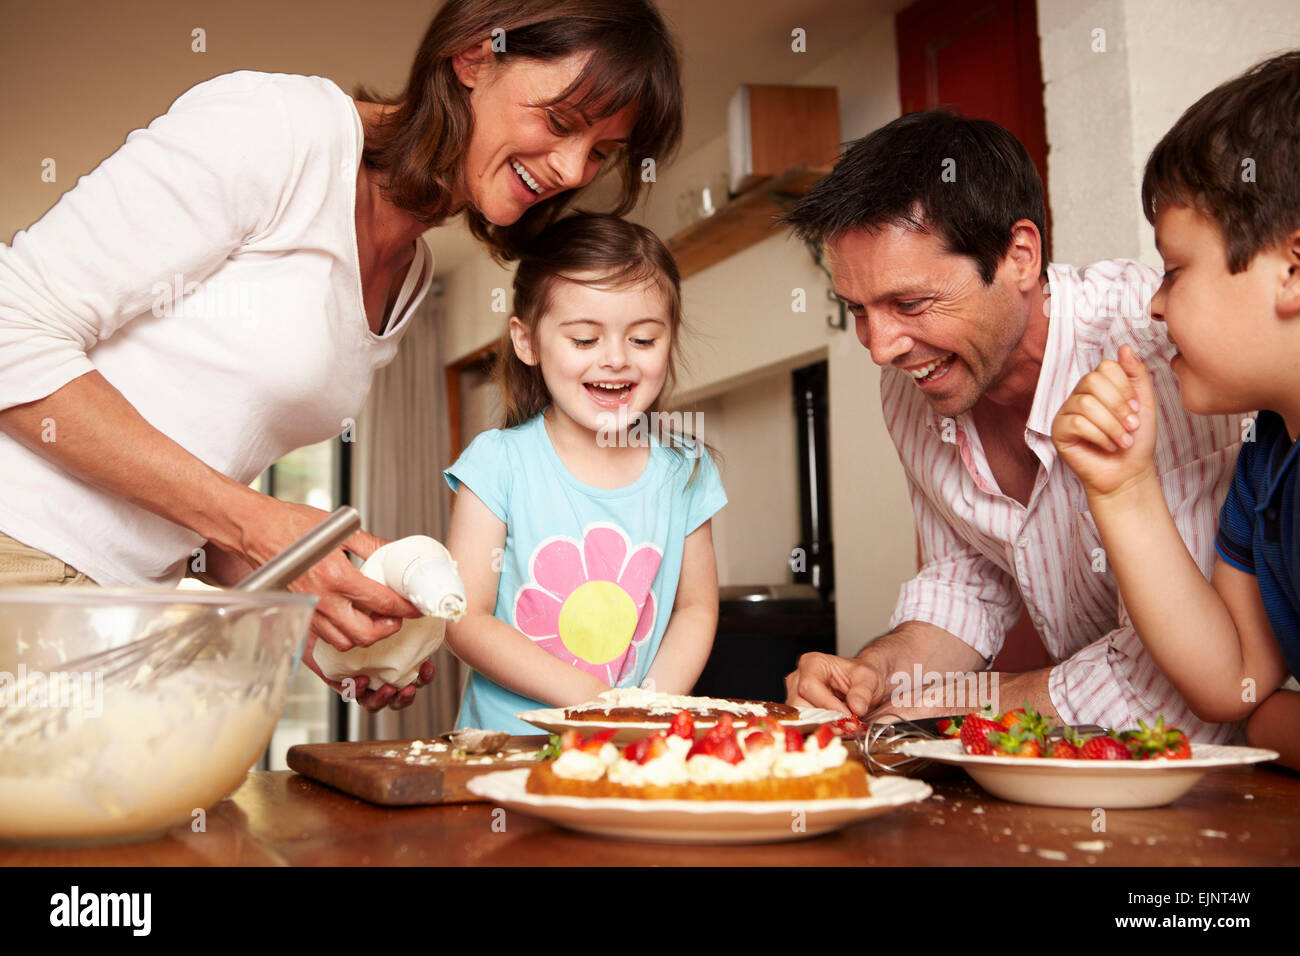 A family, two parents and two children in the kitchen icing a cake with fruit and cream. - Stock Image